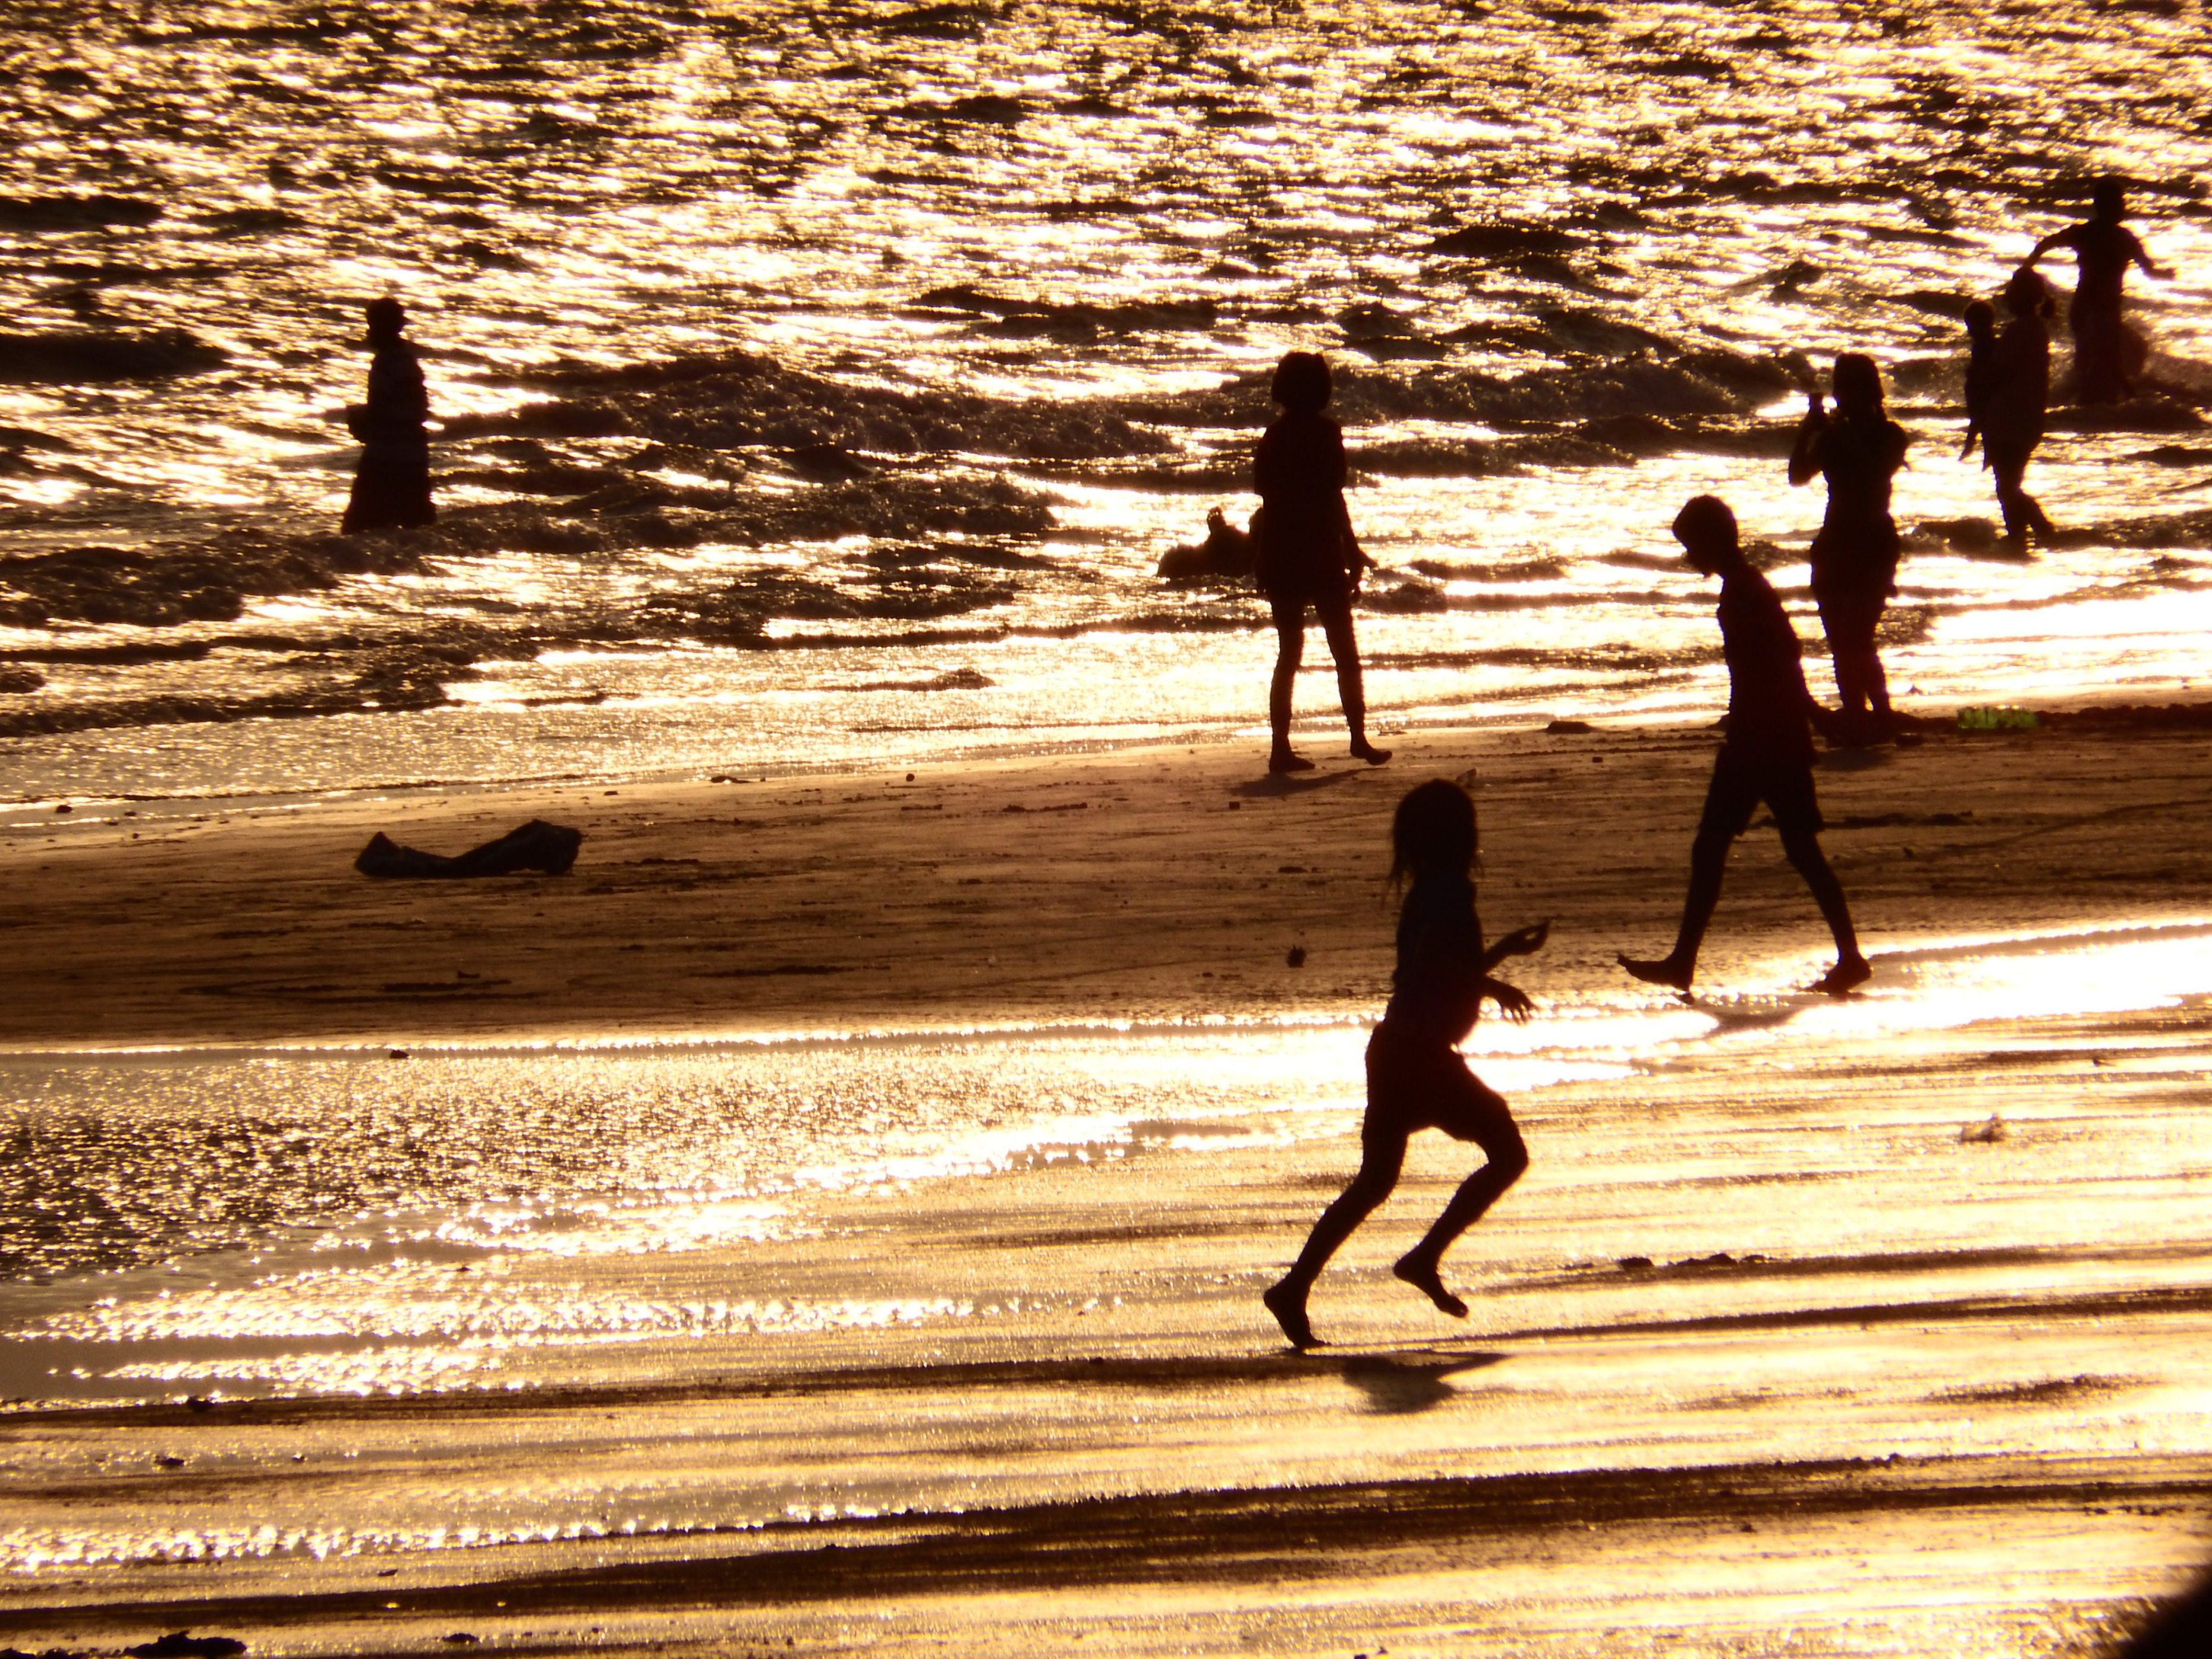 Family plays on the beach silhouette photo